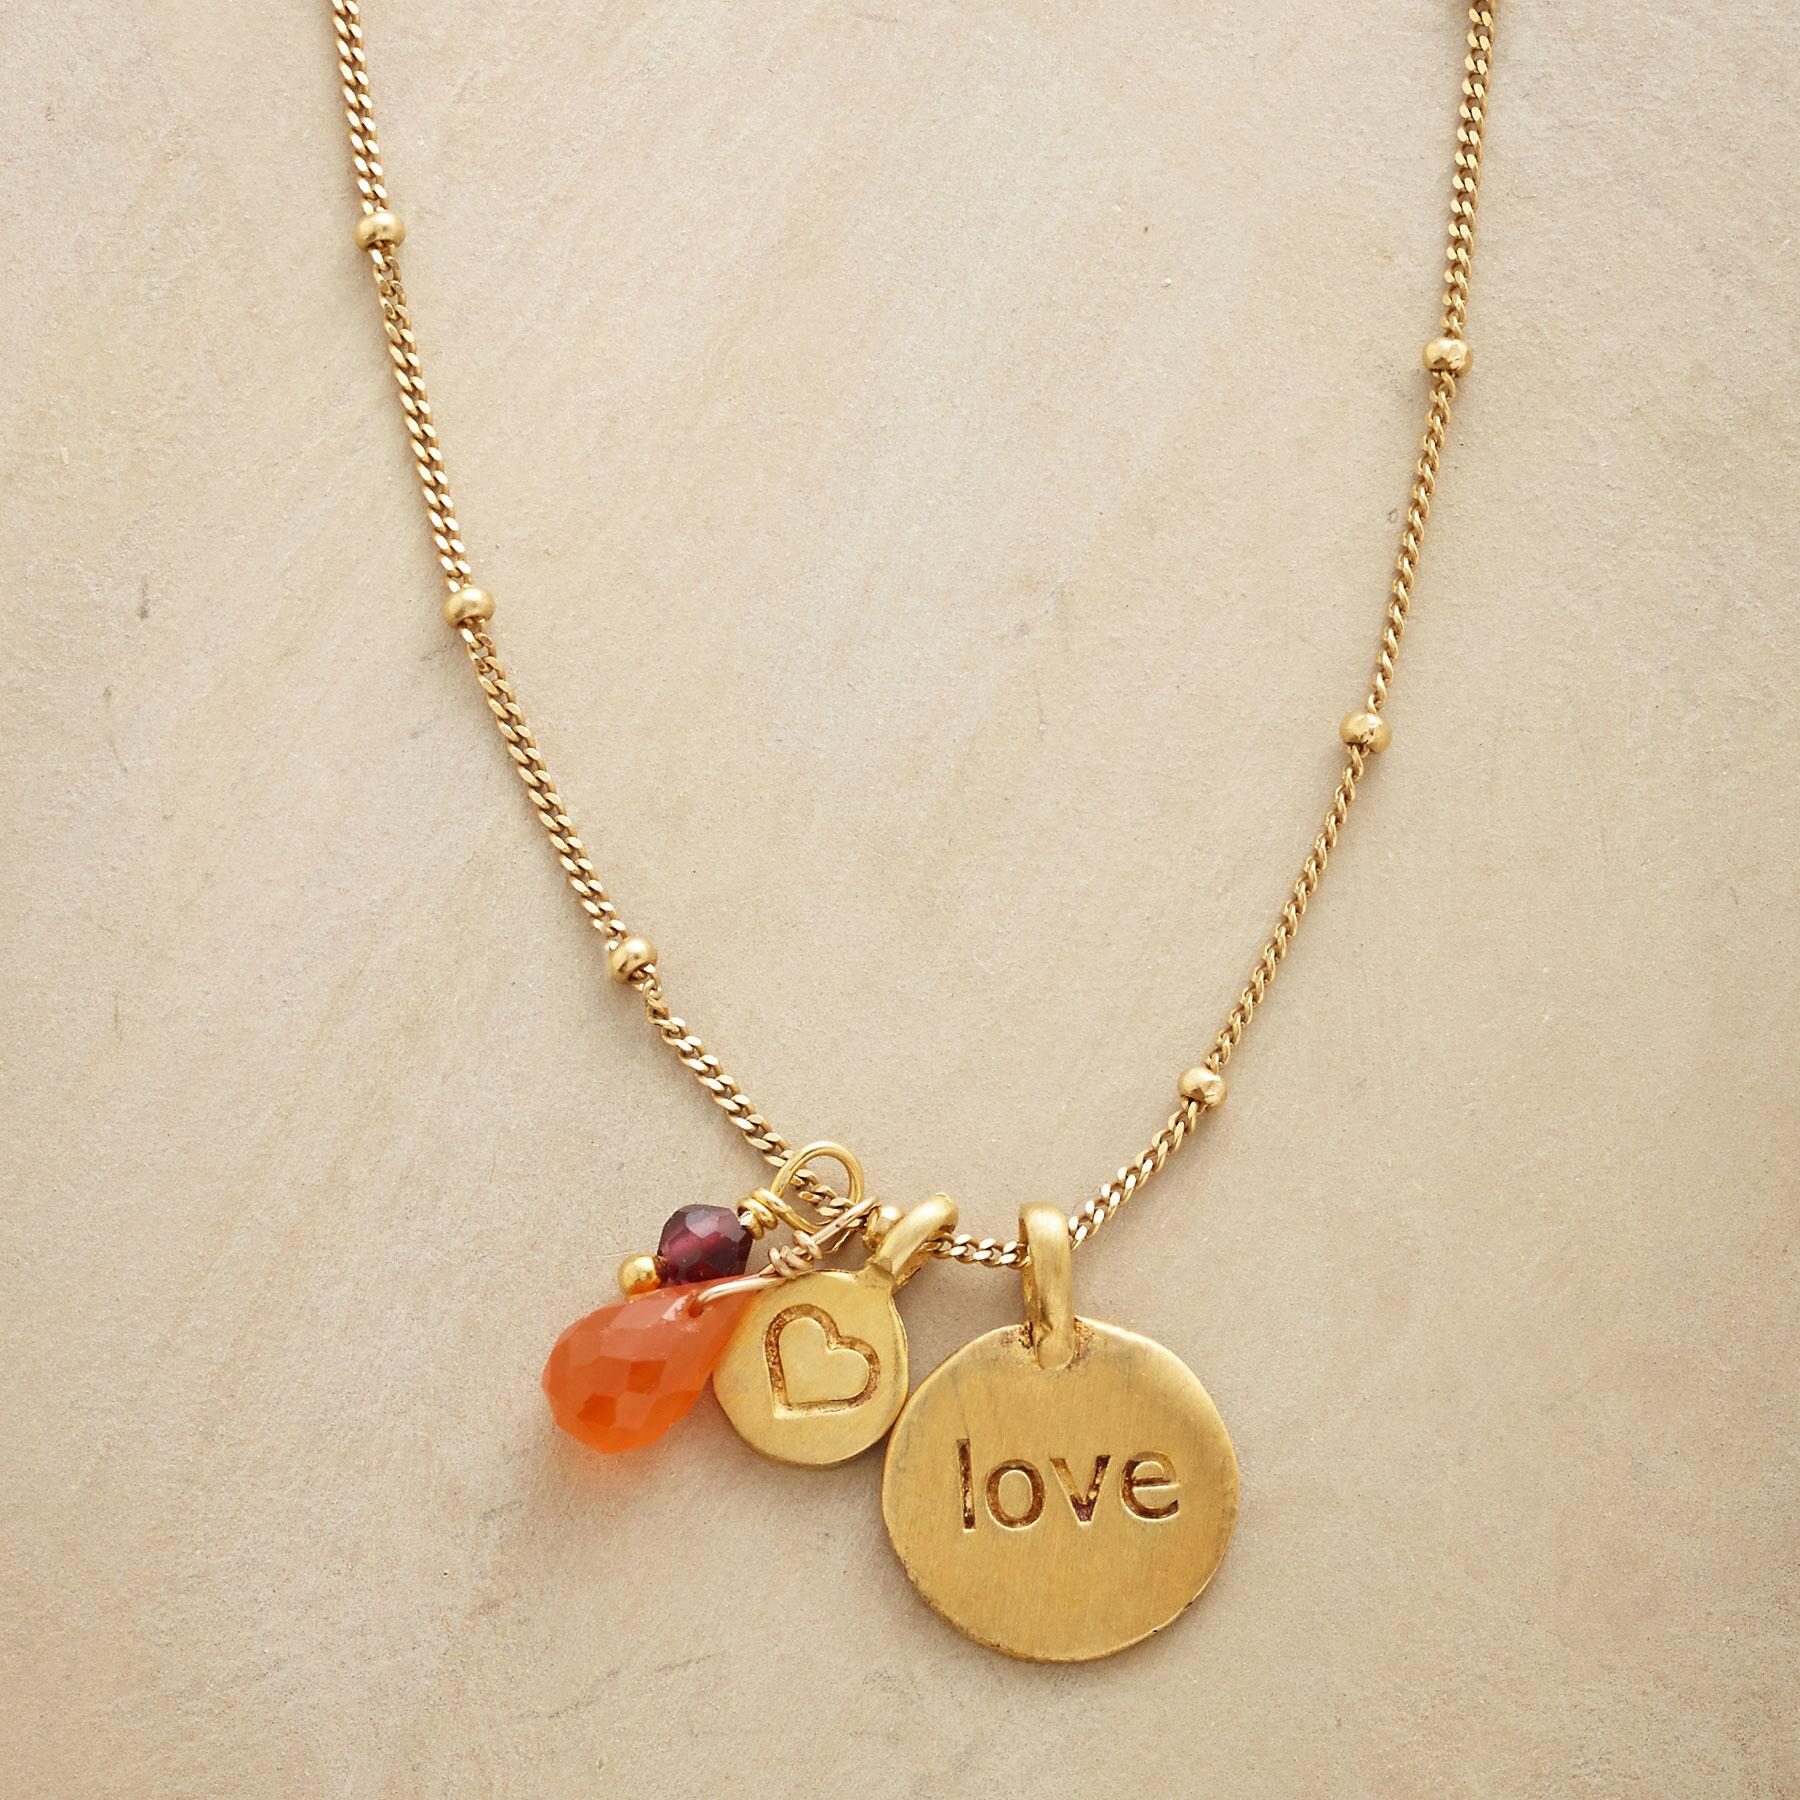 LOVE A LITTLE NECKLACE: View 1